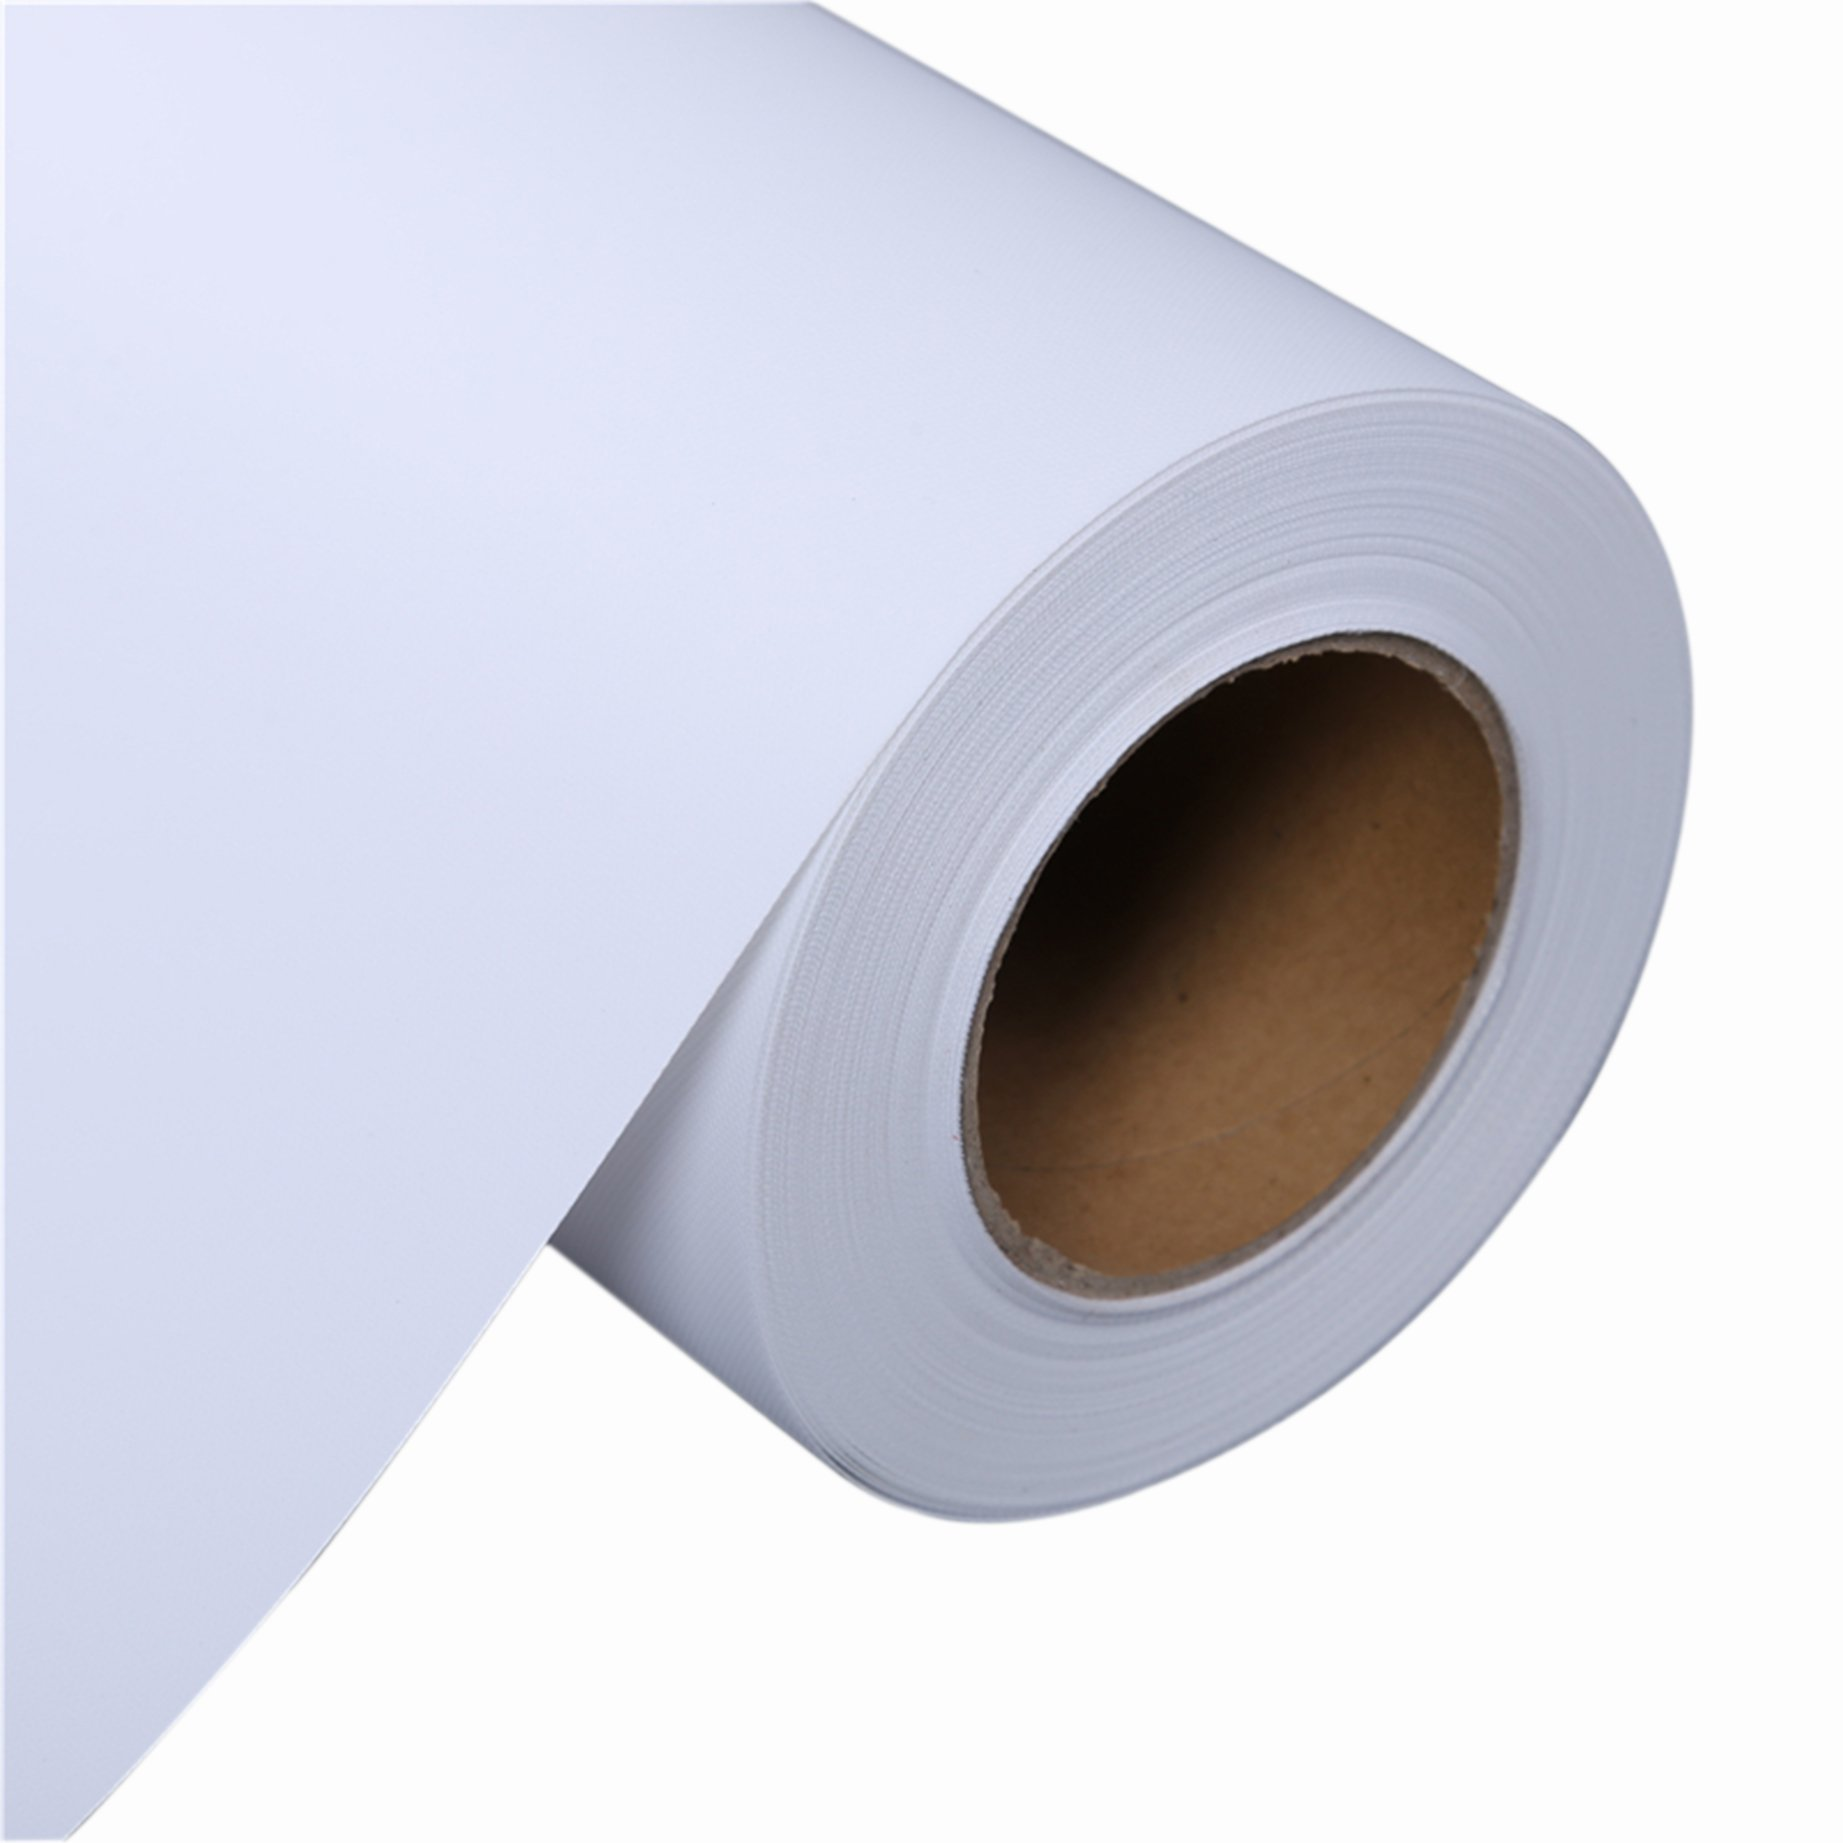 Professional Matte Canvas Roll,36''x100',290gsm, Epson Canon HP inkjet printer,Surface Polyester Thick Canvas